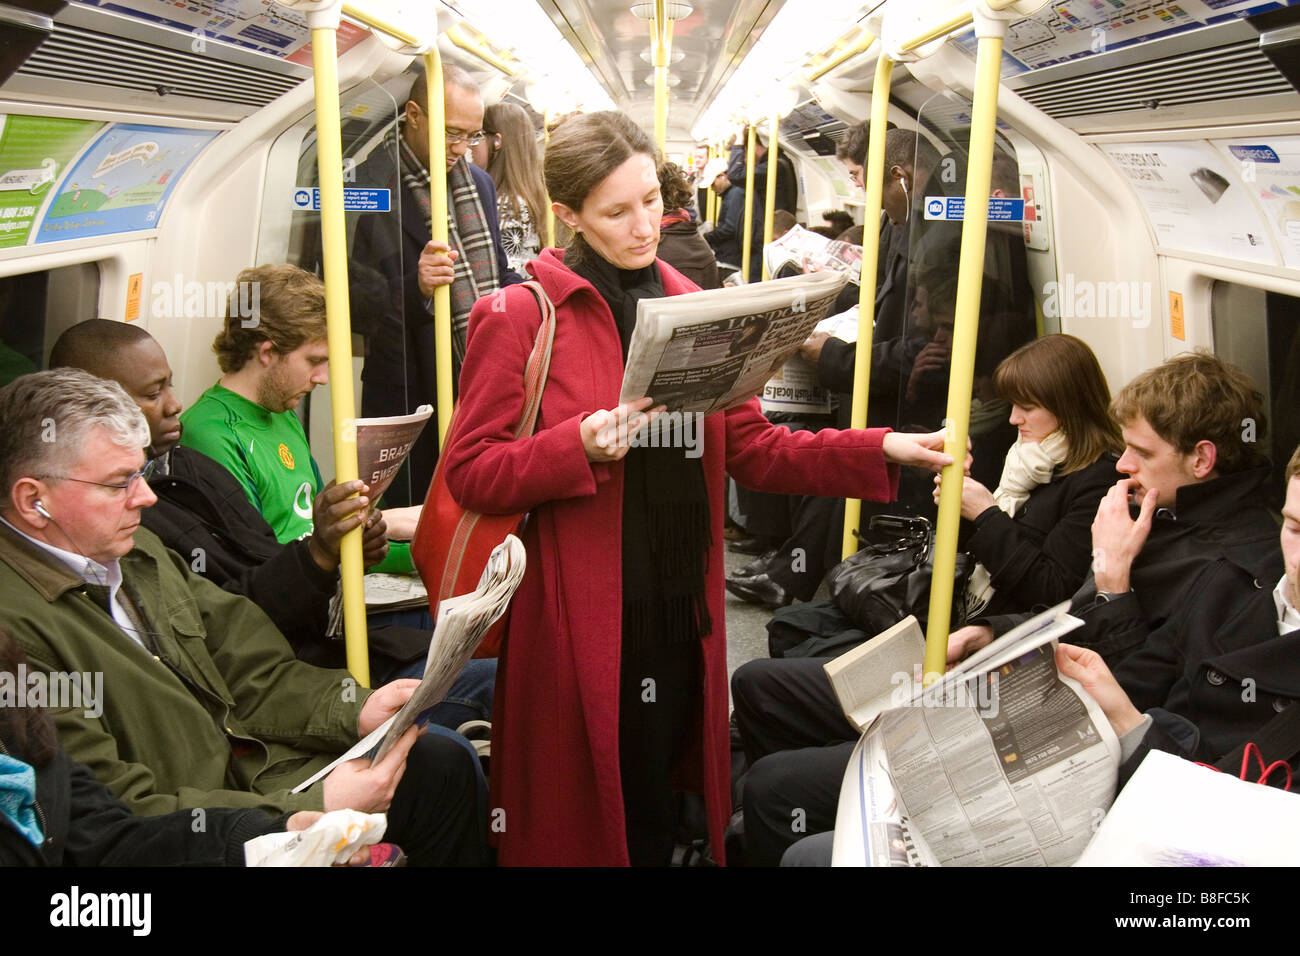 people reading newspapers on the london underground stock photo